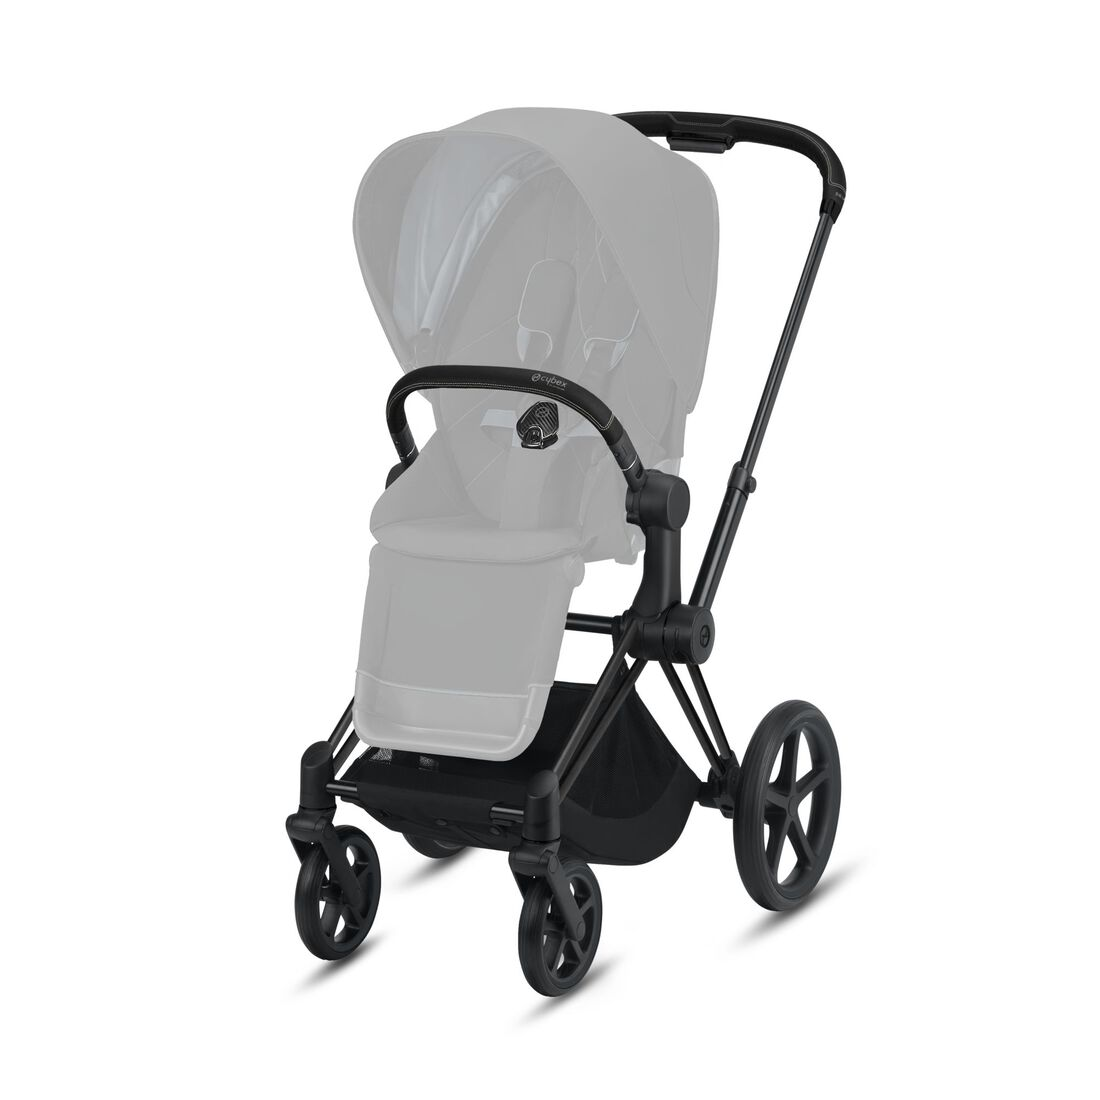 CYBEX Priam Rahmen - Matt Black in Matt Black large Bild 2